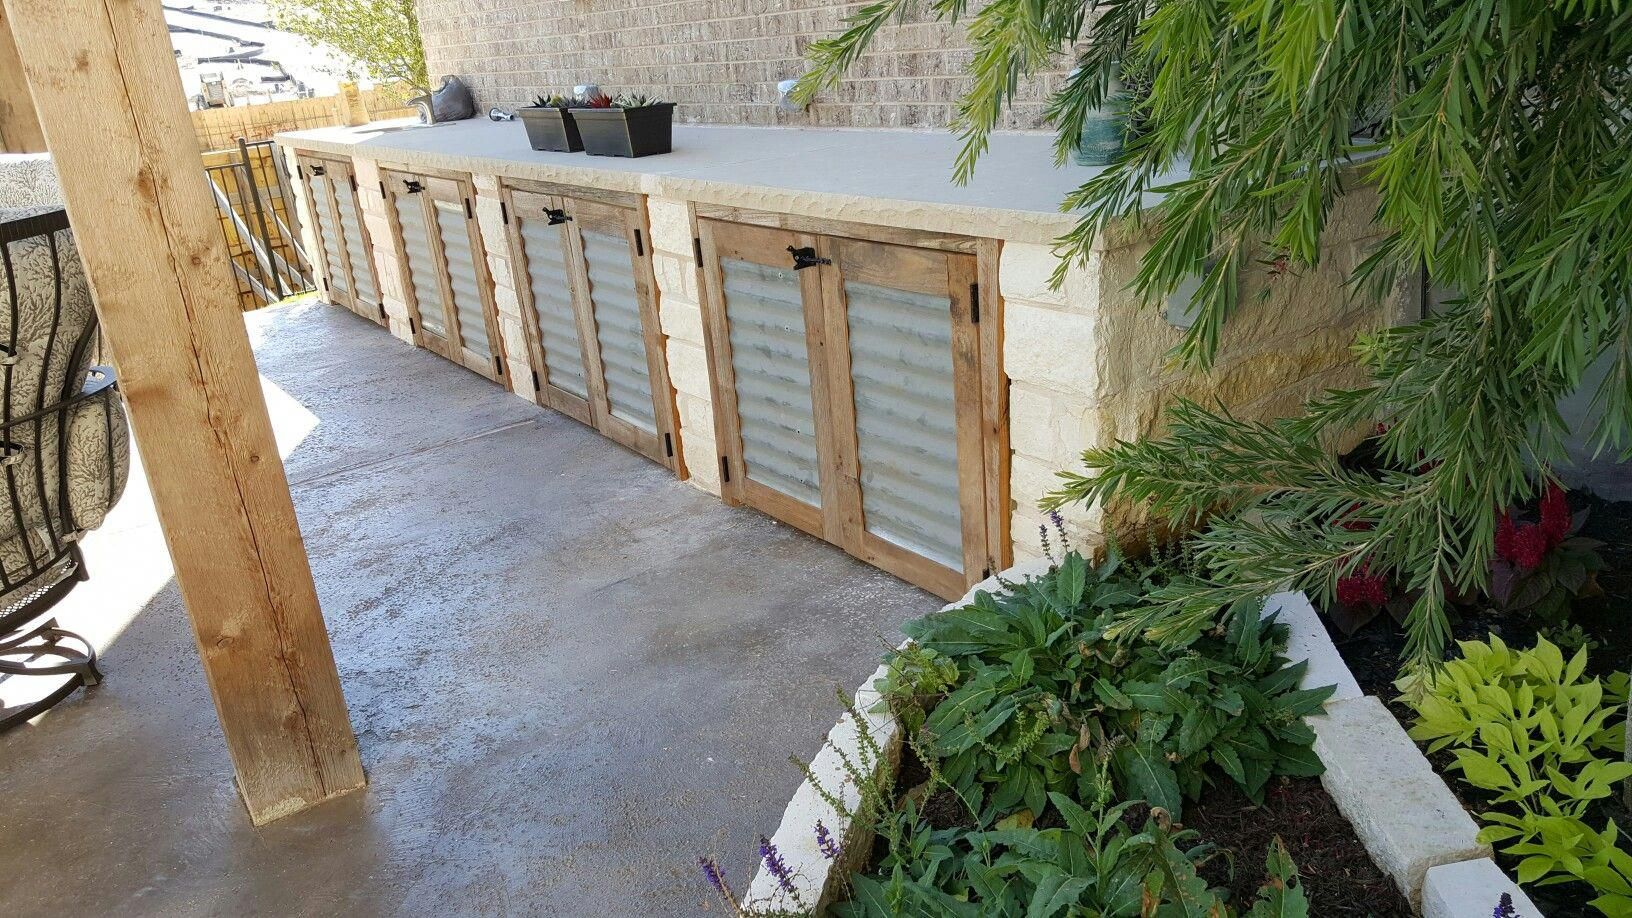 Outdoor Kitchen Rustic Cabinet Doors Using Barn Wood Frames And Reclaimed Corrugated Tin Outdoorkitchencountertopswood Rustic Doors Kitchen Cabinets To Ceiling Kitchen Shelf Decor